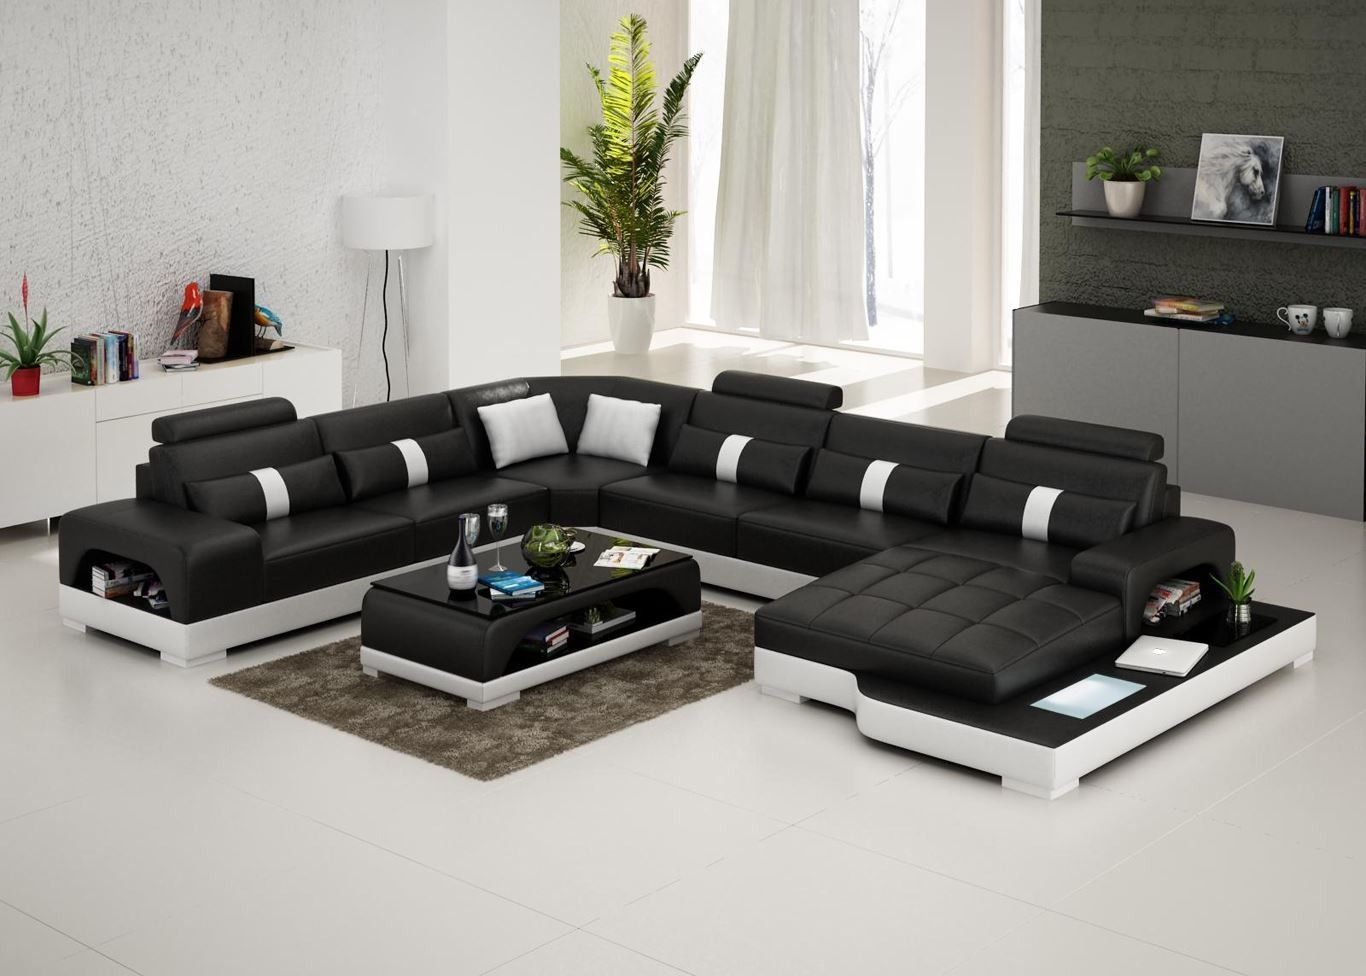 Connie Sectional Sofa Leather Living Room Furniture Fancy Furniture Leather Sectional Leather Living Room Furniture Living Room Sofa Living Room Leather